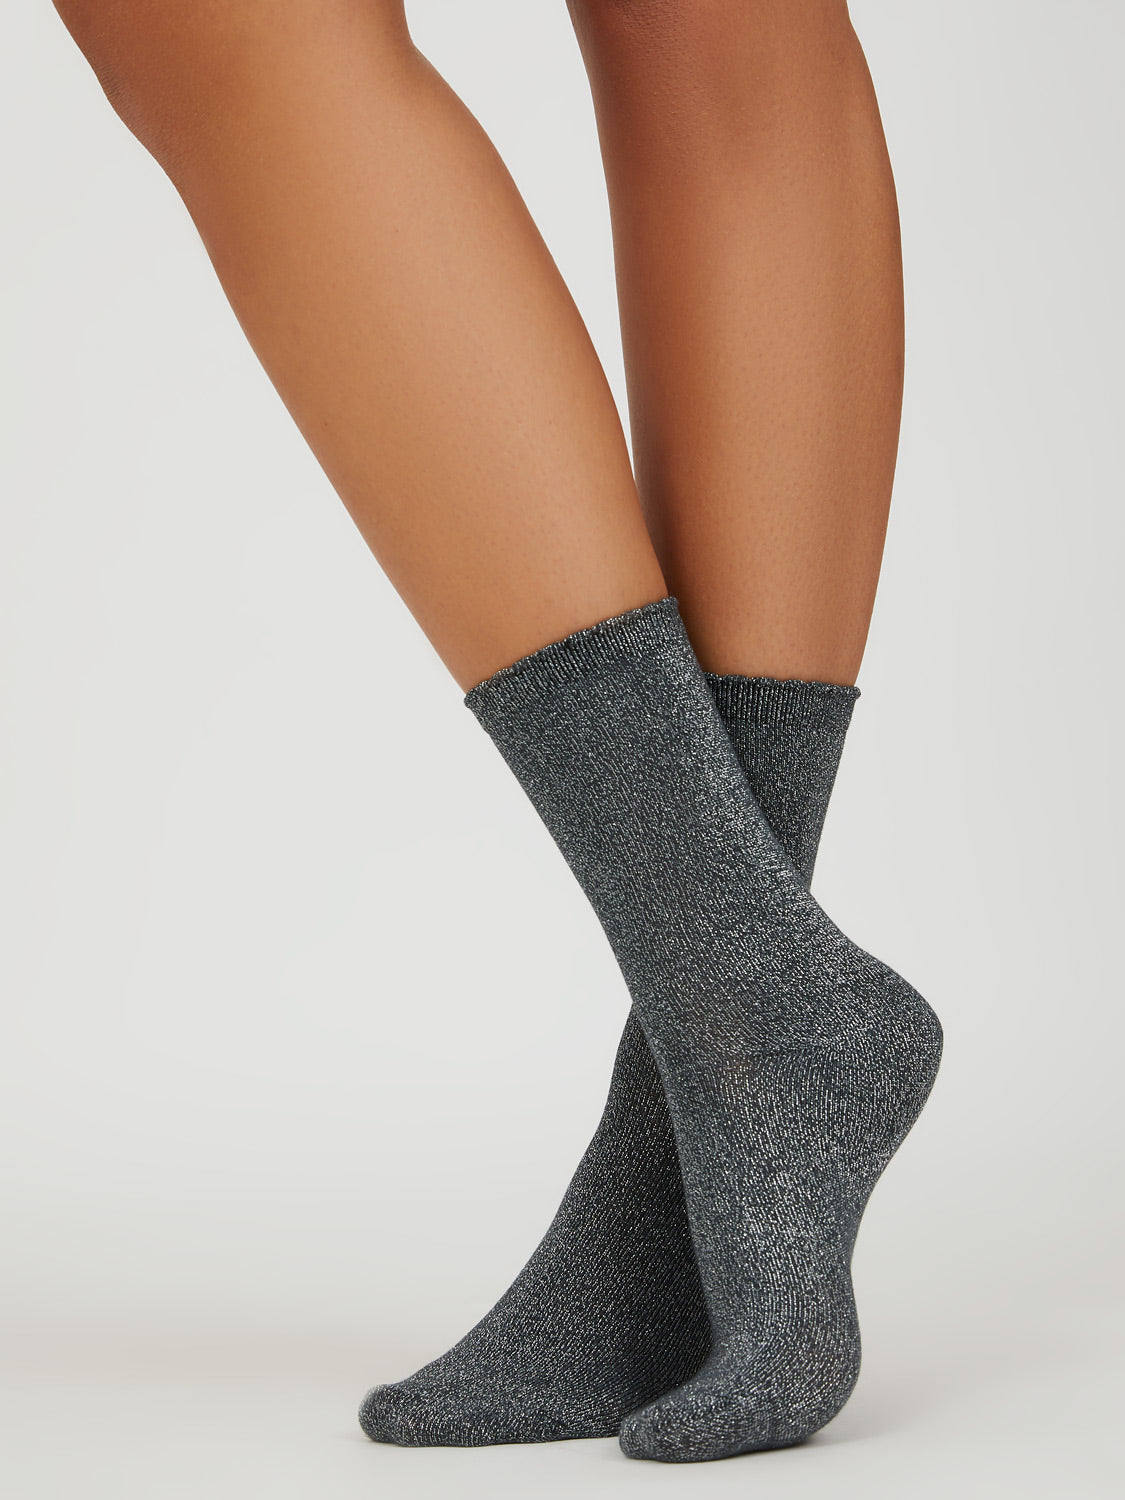 Metallic Crew Socks - Pack of 3